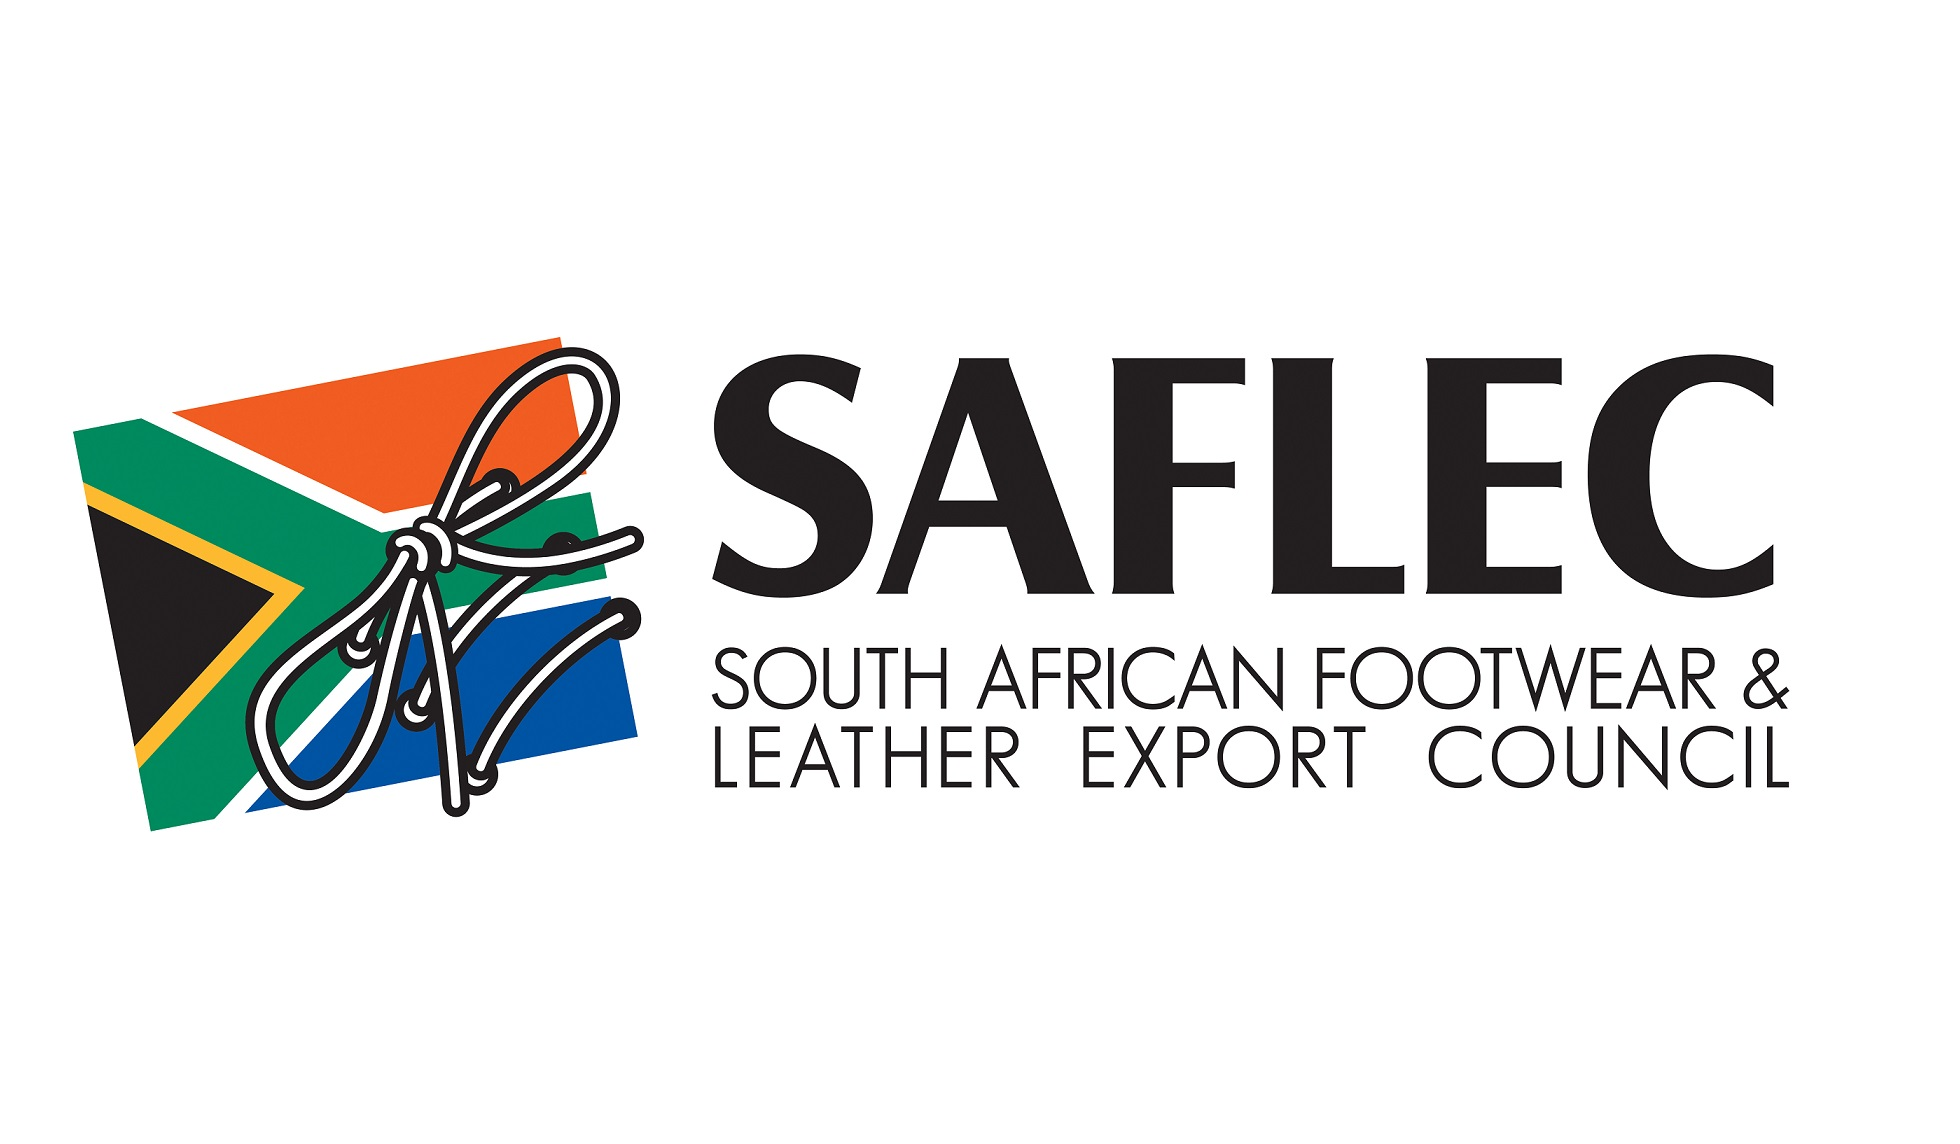 saflec exhibitors at leatherworld middle east doing business